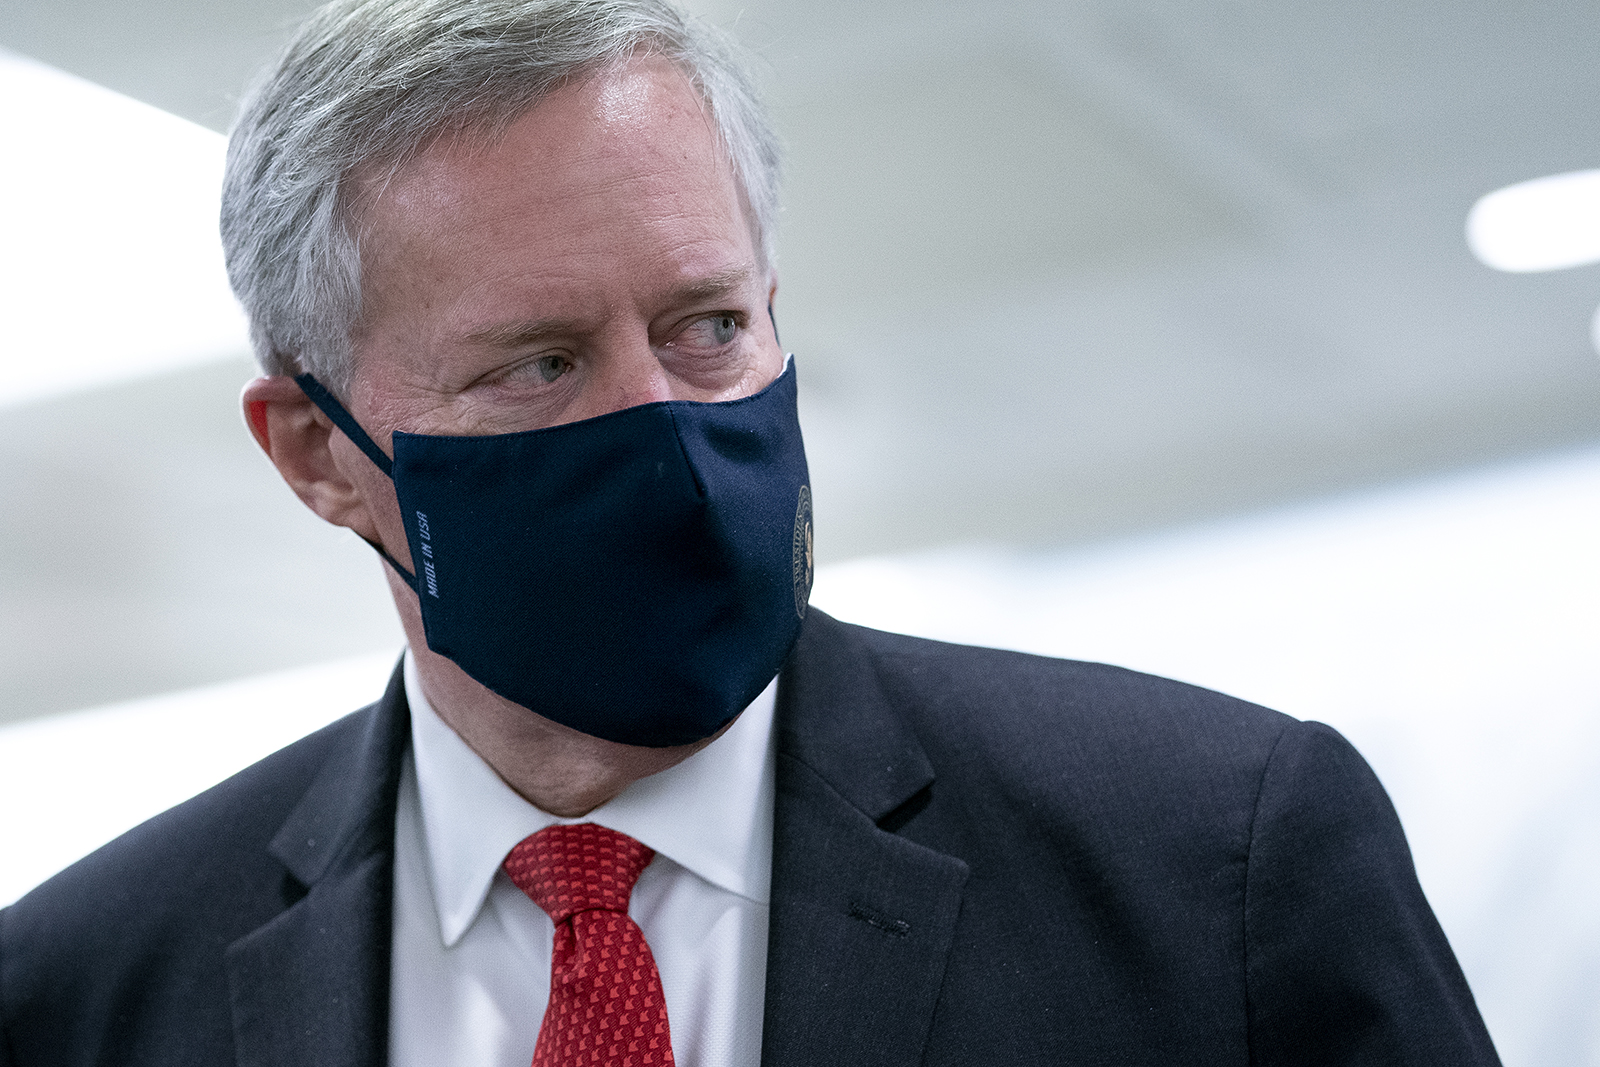 White House Chief of Staff Mark Meadows wears a protective mask as he departs the Senate Republican policy luncheon in the Hart Senate Office Building on Capitol Hill on October 21 in Washington.